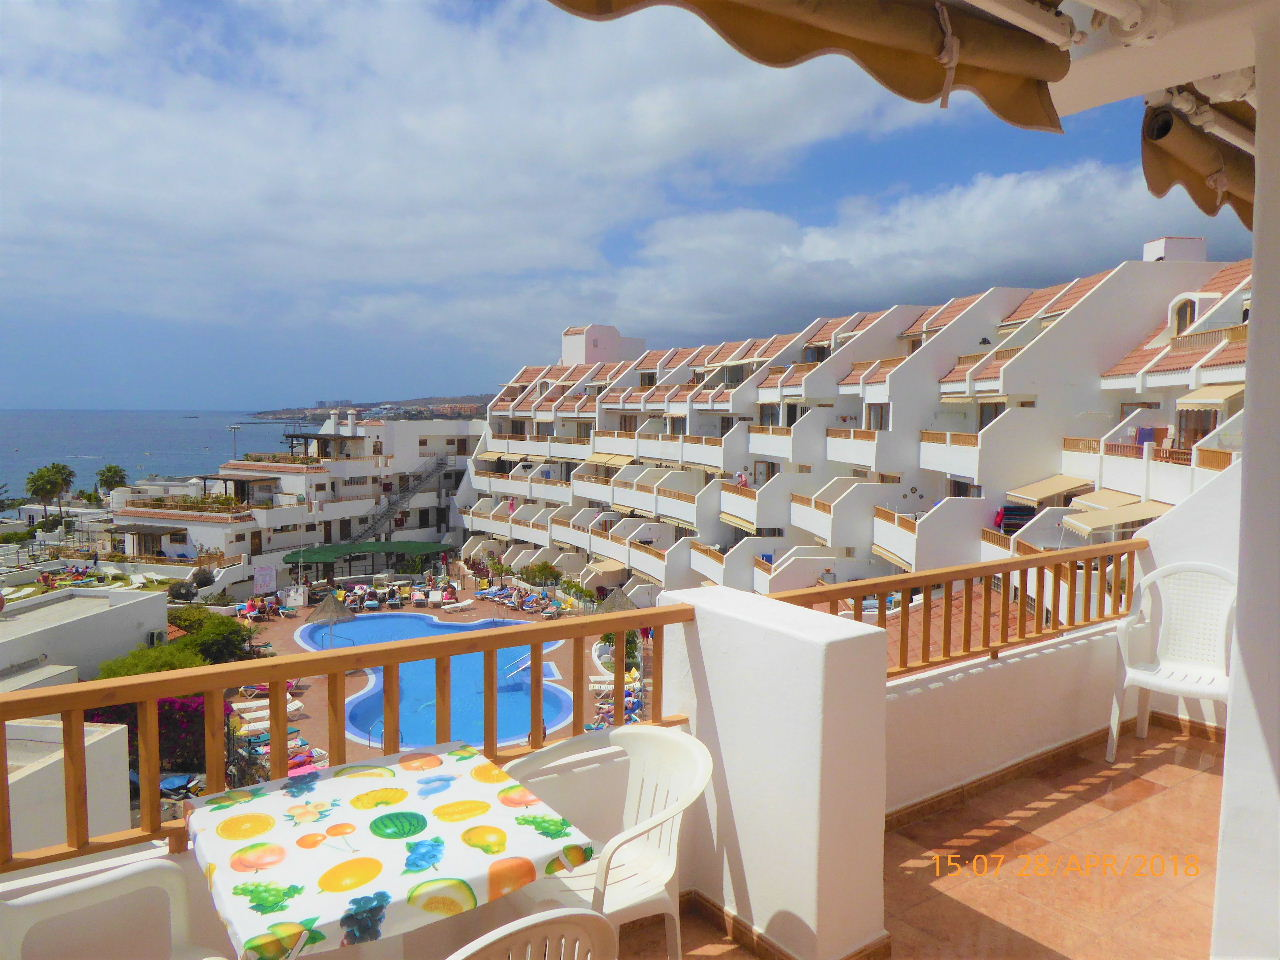 Tenerife Holiday Apartment for Rent €750 week